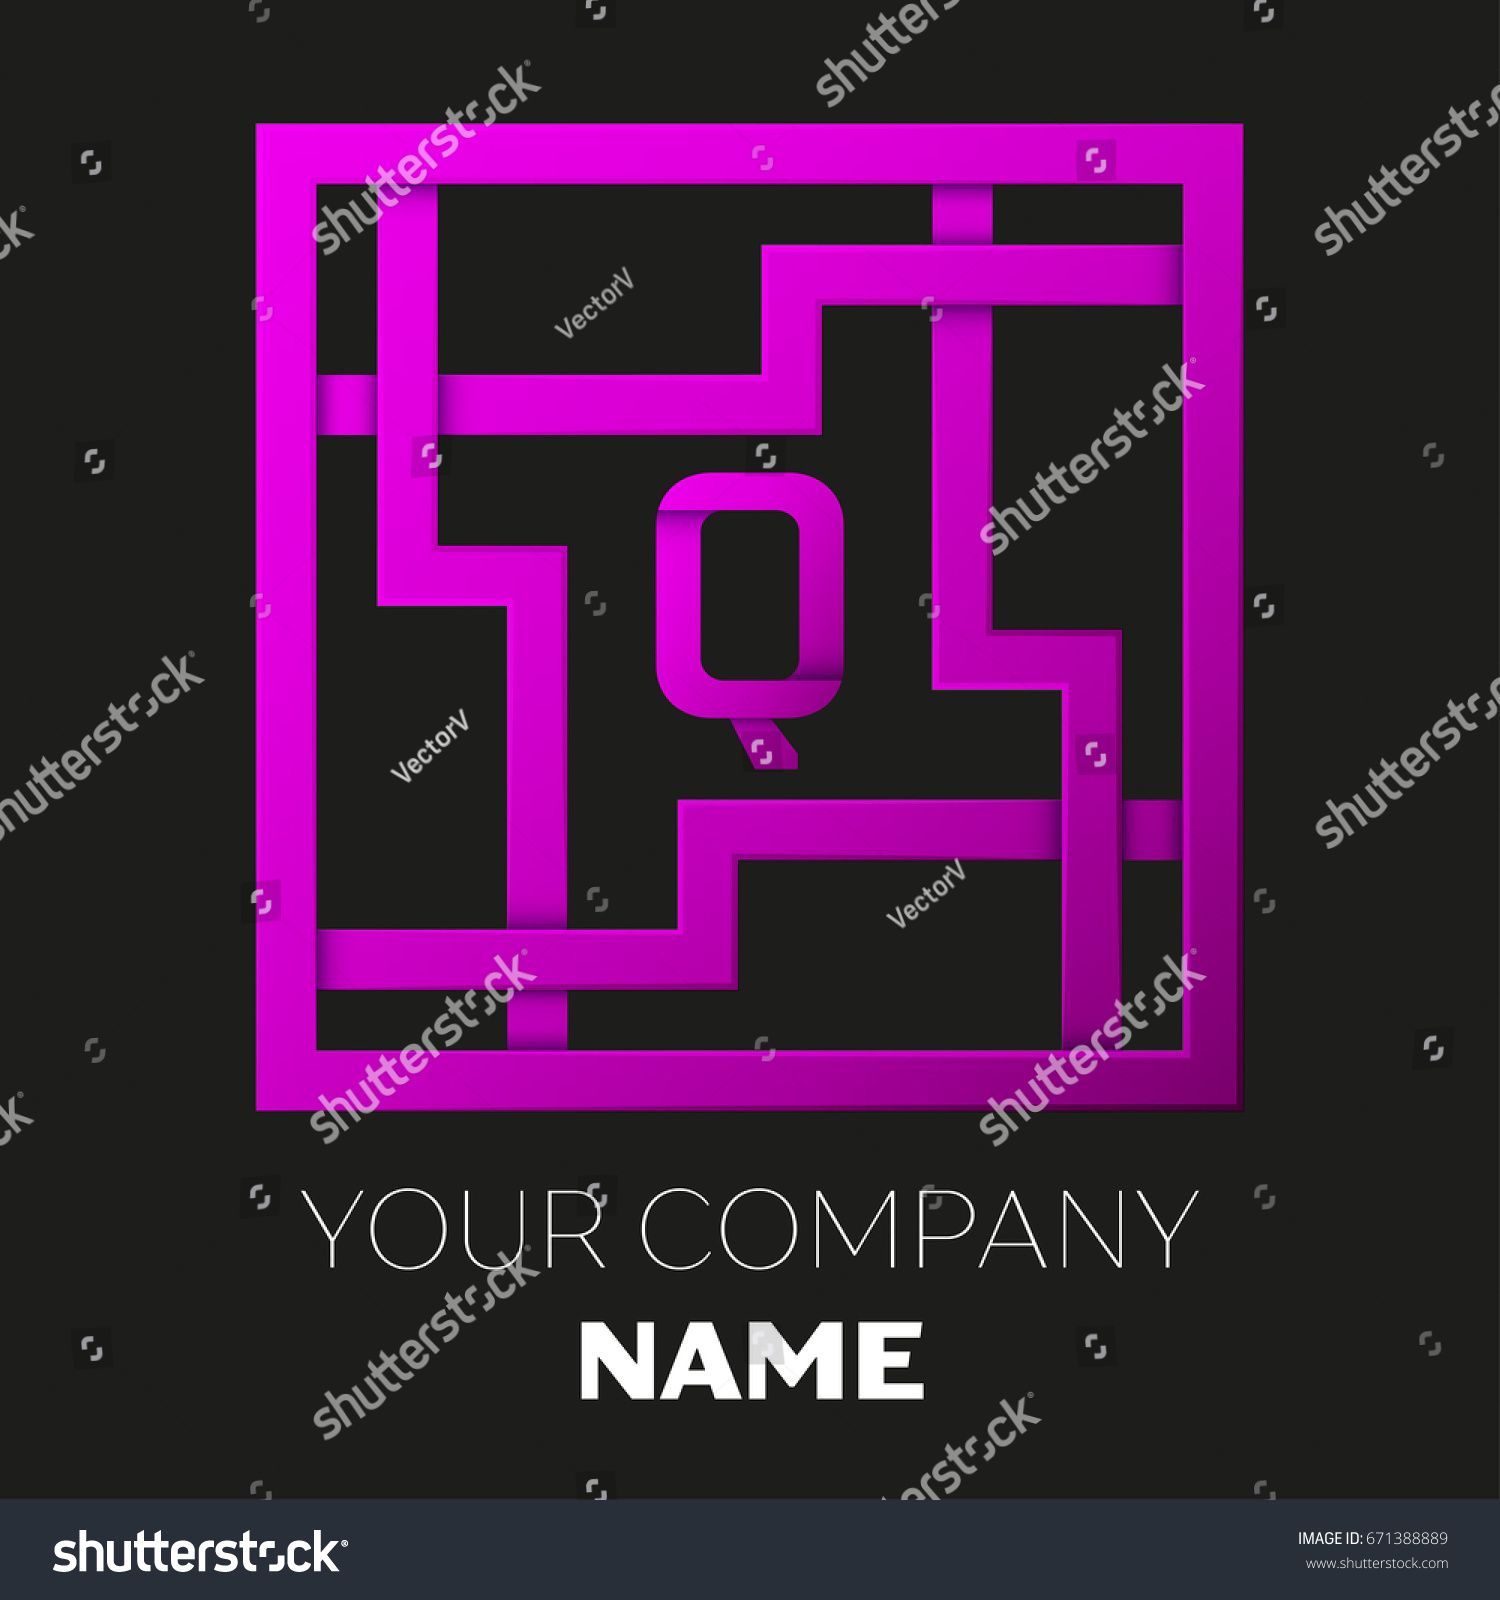 Realistic Letter Q vector logo symbol in the colorful square maze on black  background. Shadow